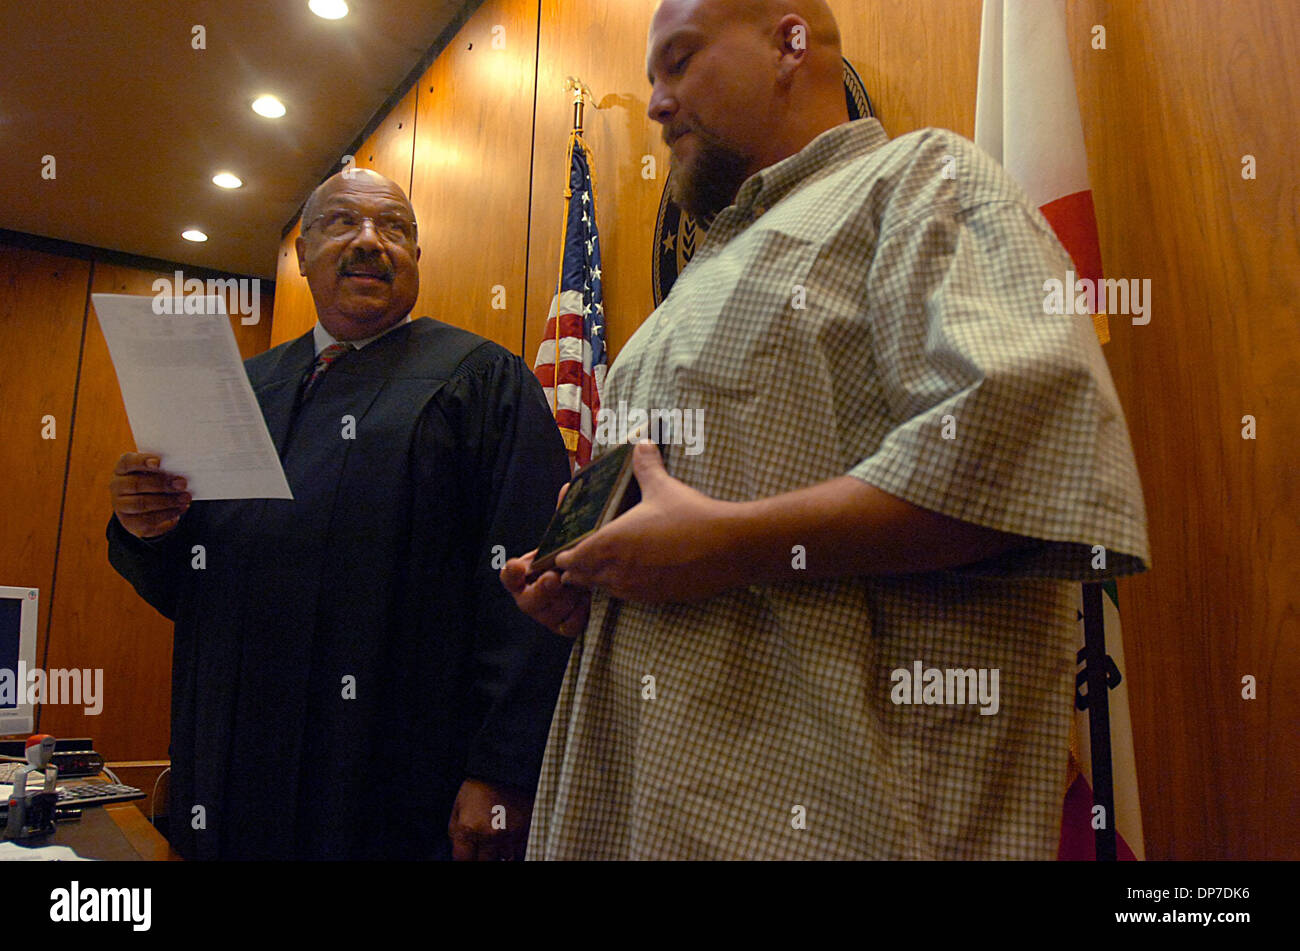 Oct 23, 2006; Sacramento, CA, USA; Judge Gary Ransom, congratulates Barry Ward Jr., who was addicted to meth after he invited him to join him at his desk on Monday, October 23, 2006 during his graduation from the Sacramento County Drug Court Program. Mandatory Credit: Photo by Hector Amezcua/Sacramento Bee/ZUMA Press. (©) Copyright 2006 by Sacramento Bee - Stock Image